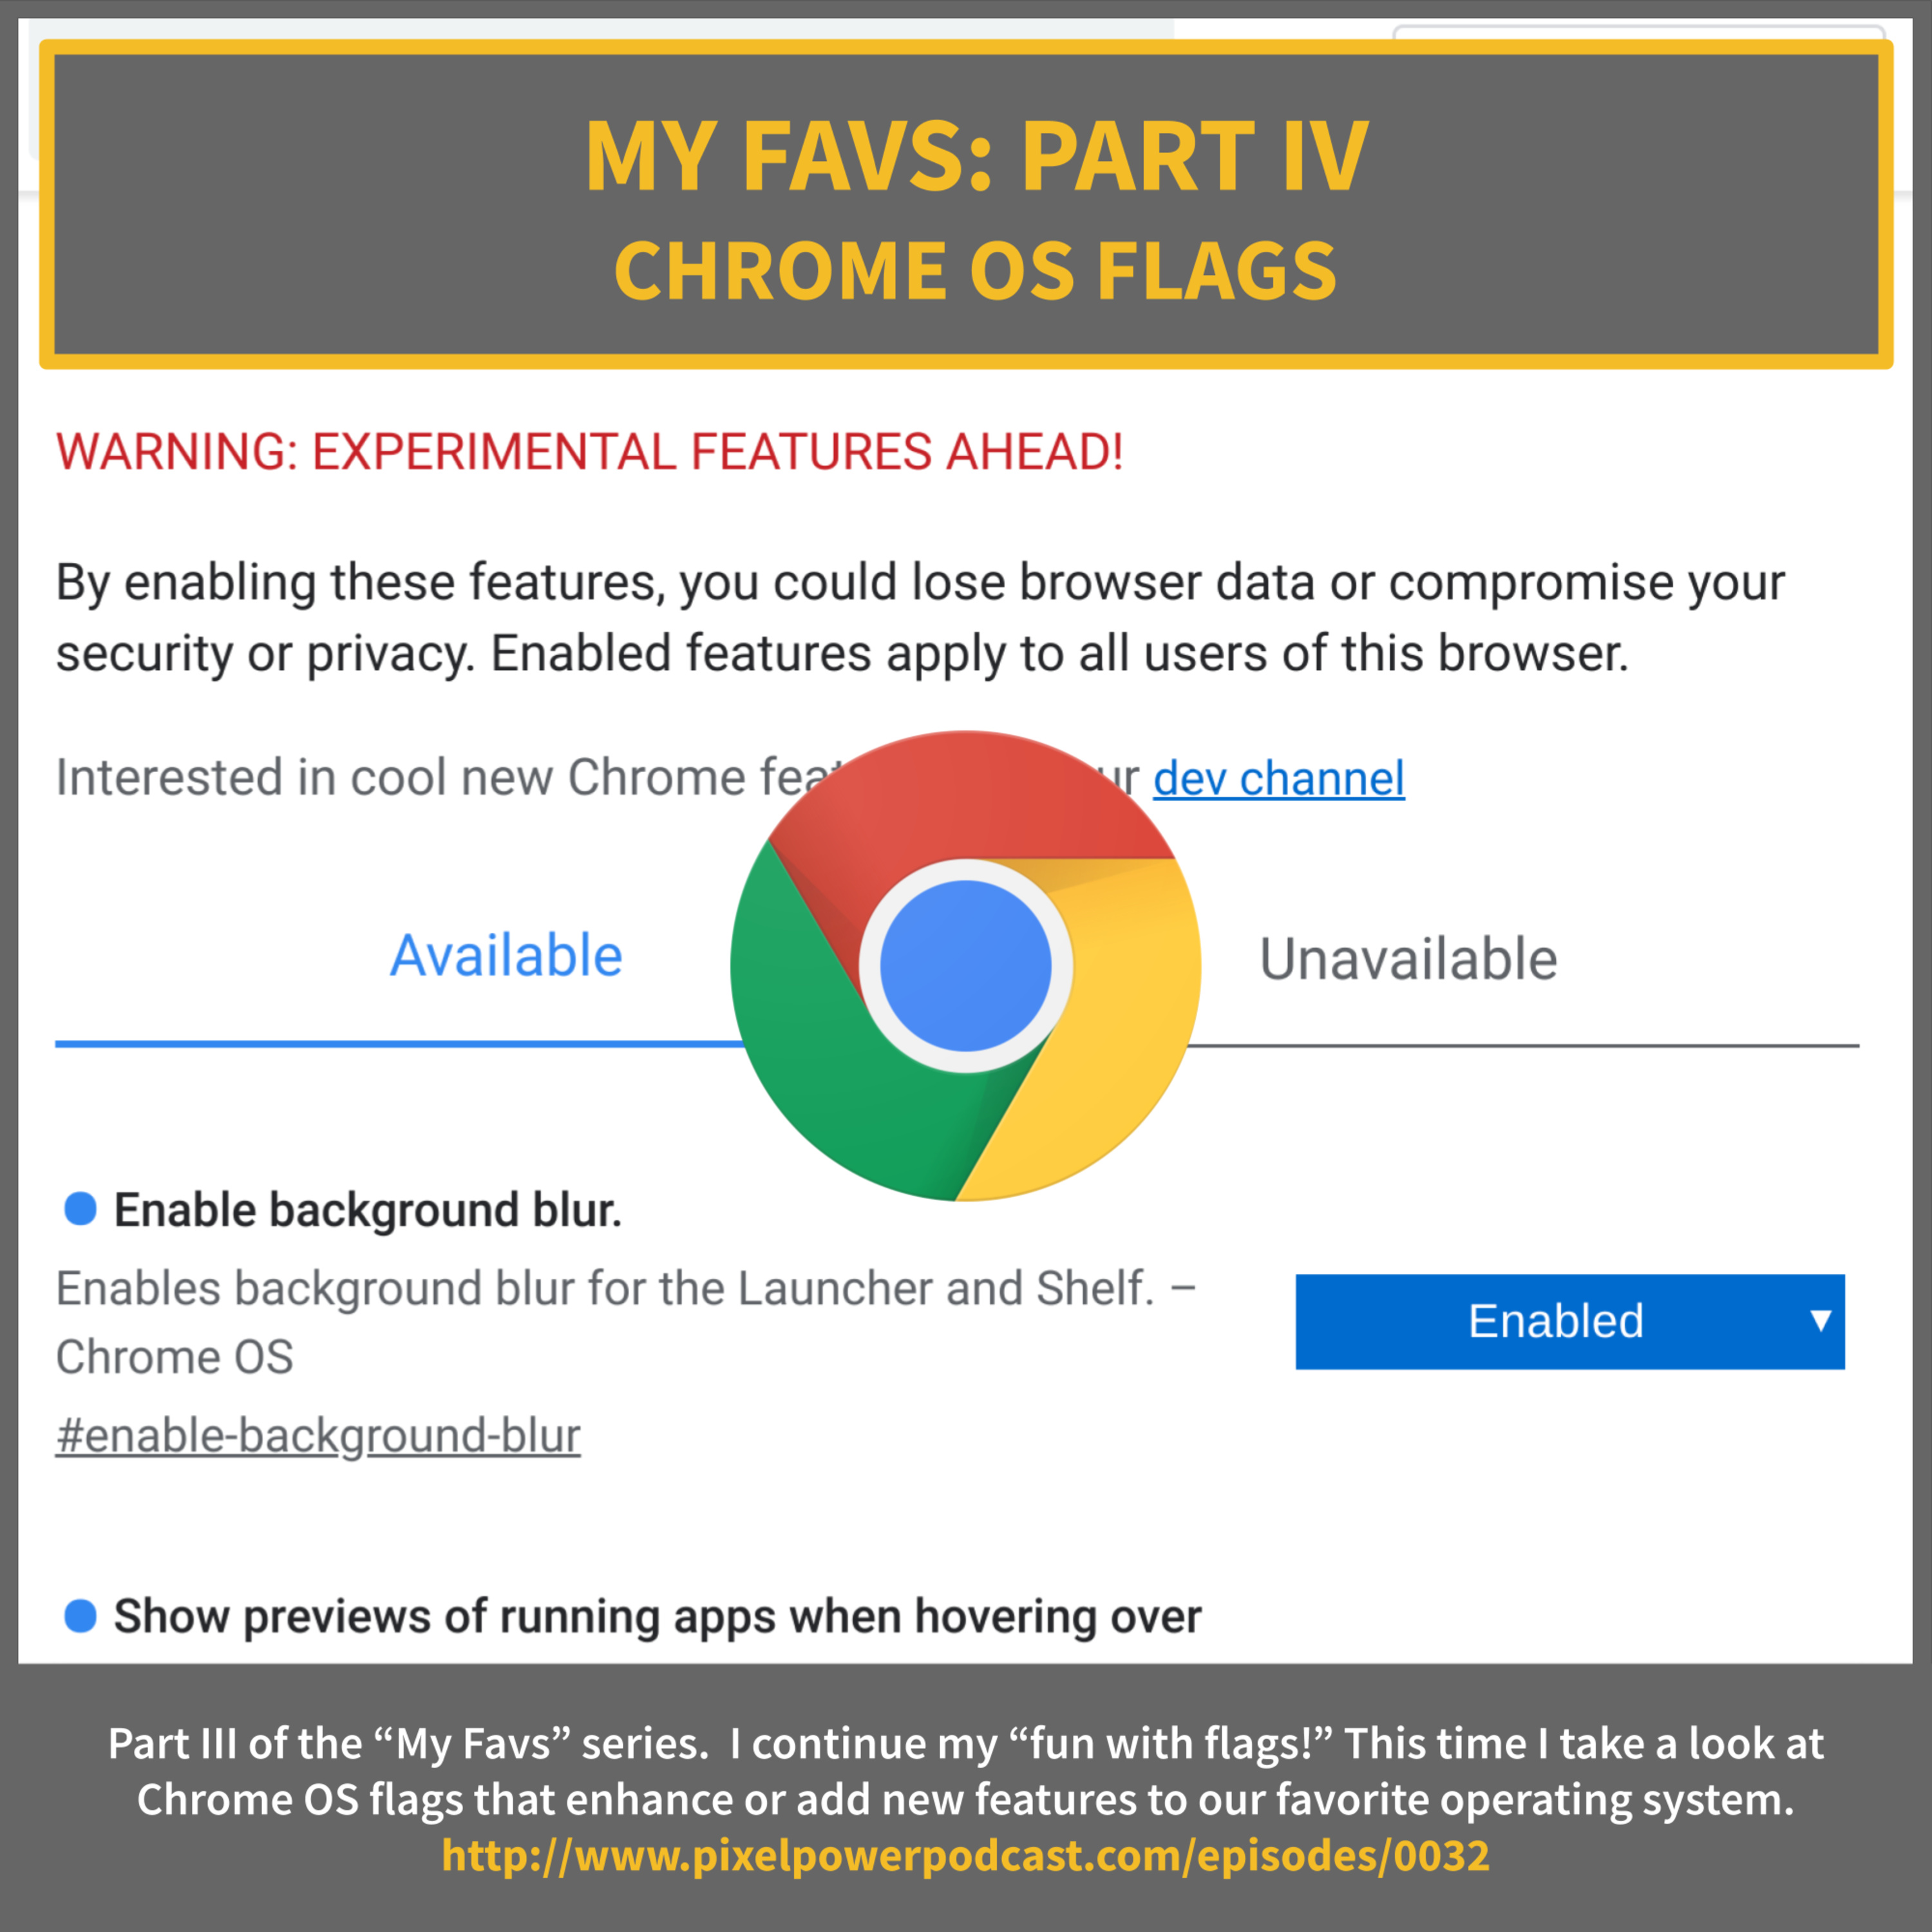 0032: My Favs Part IV: Chrome OS Flags